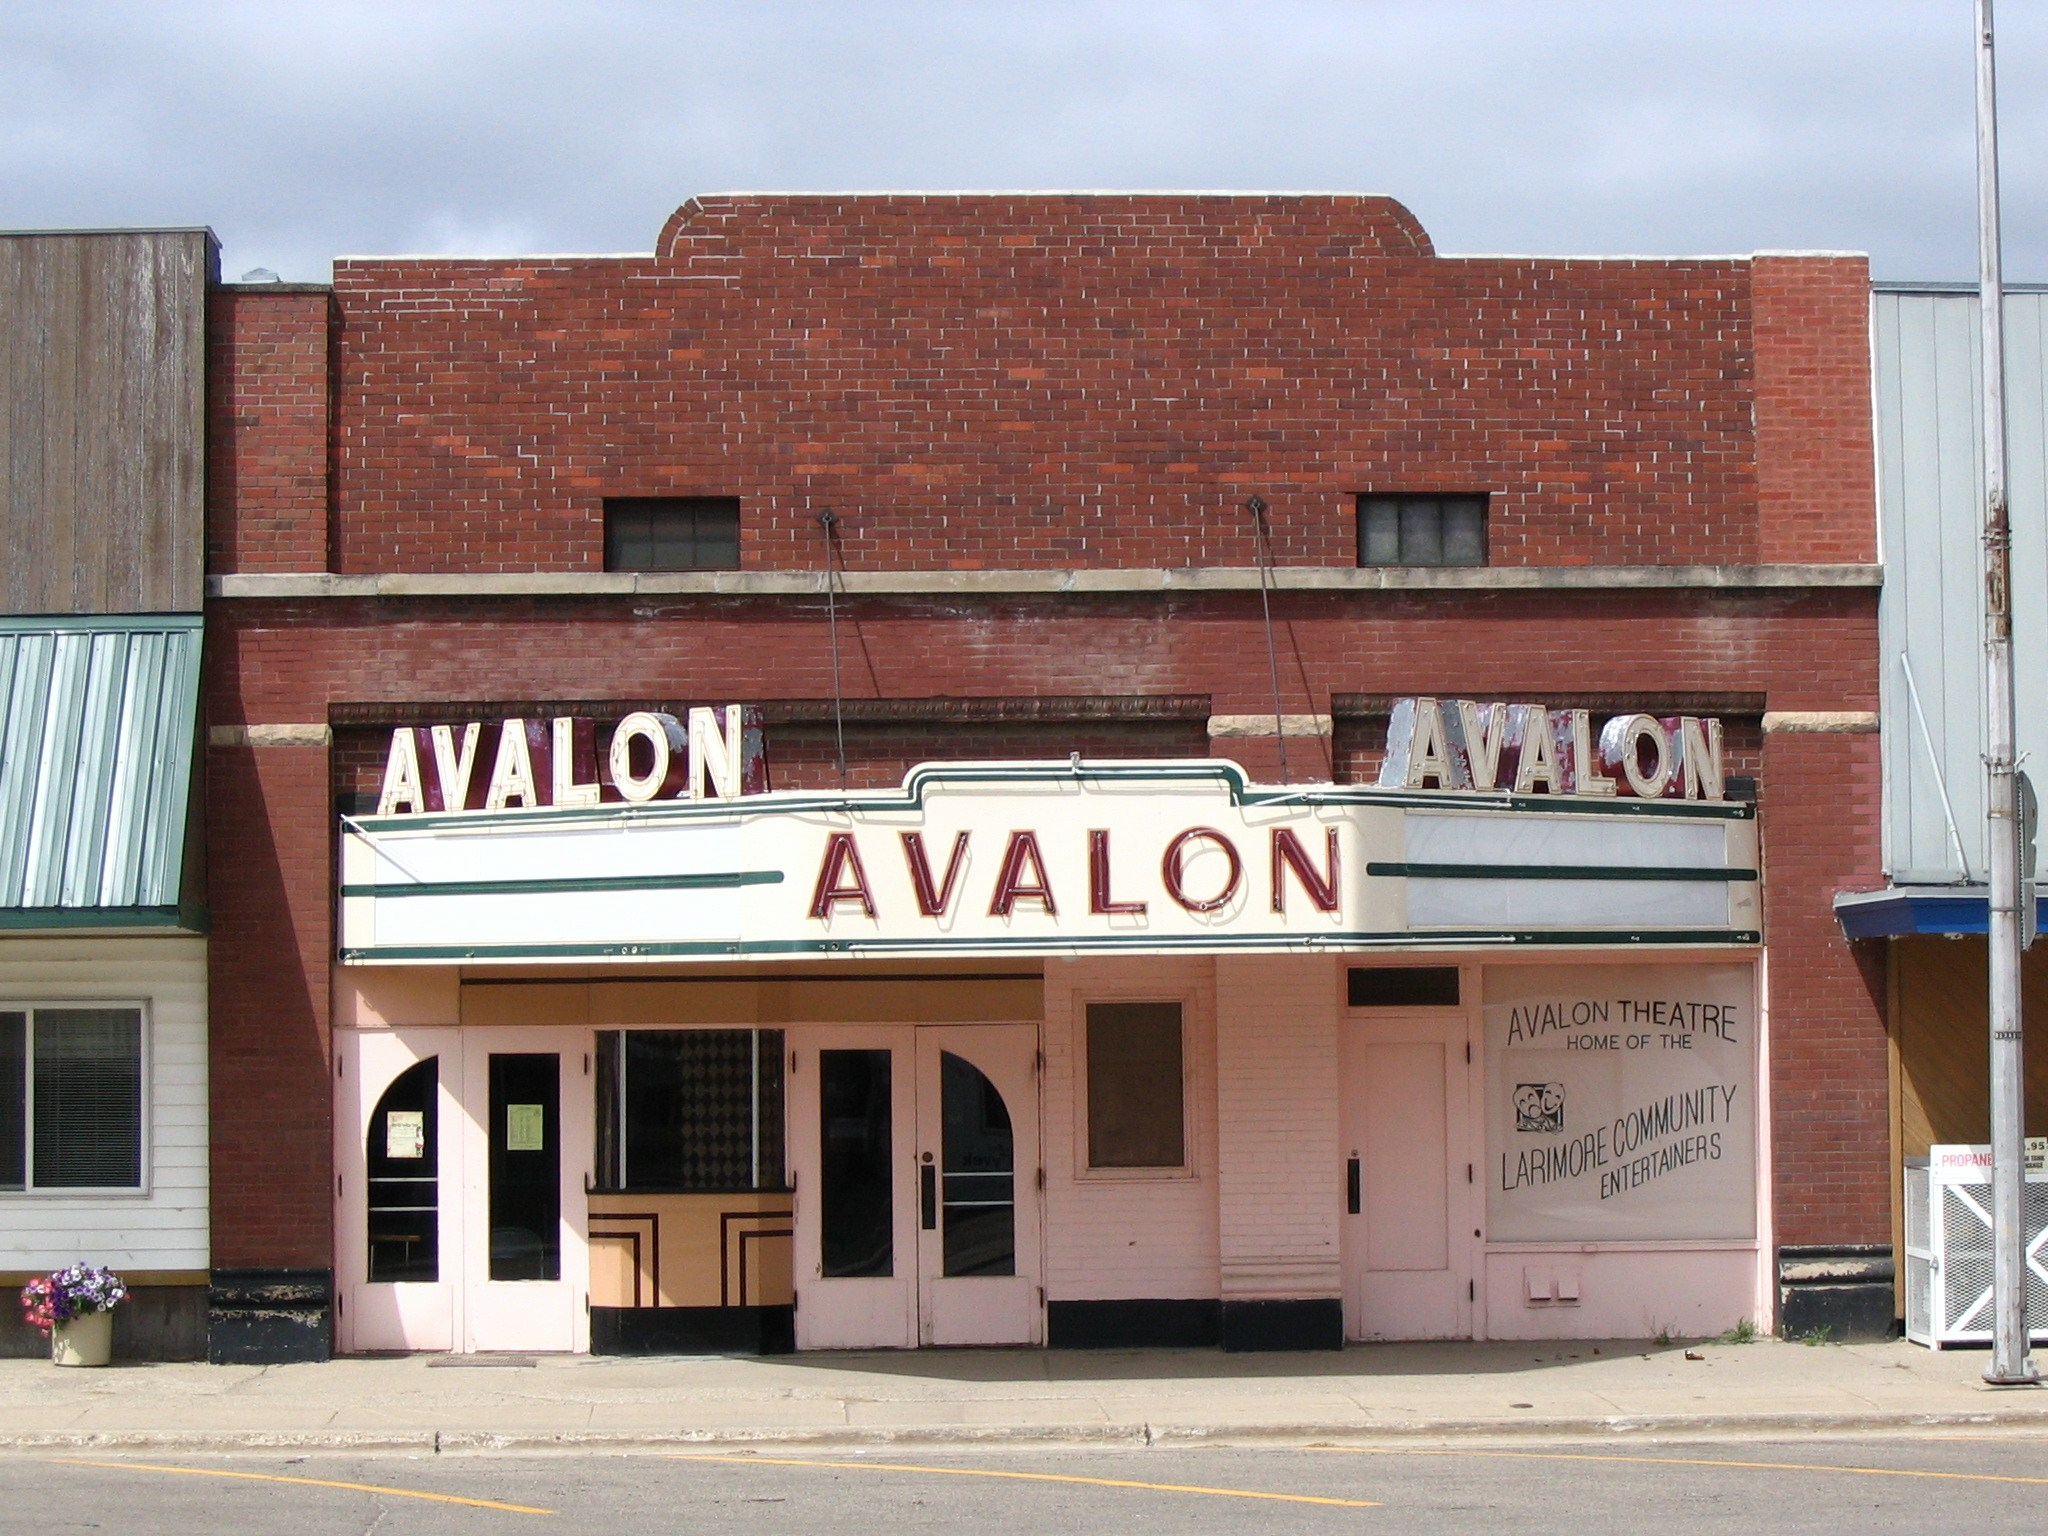 The Avalon as it looks today